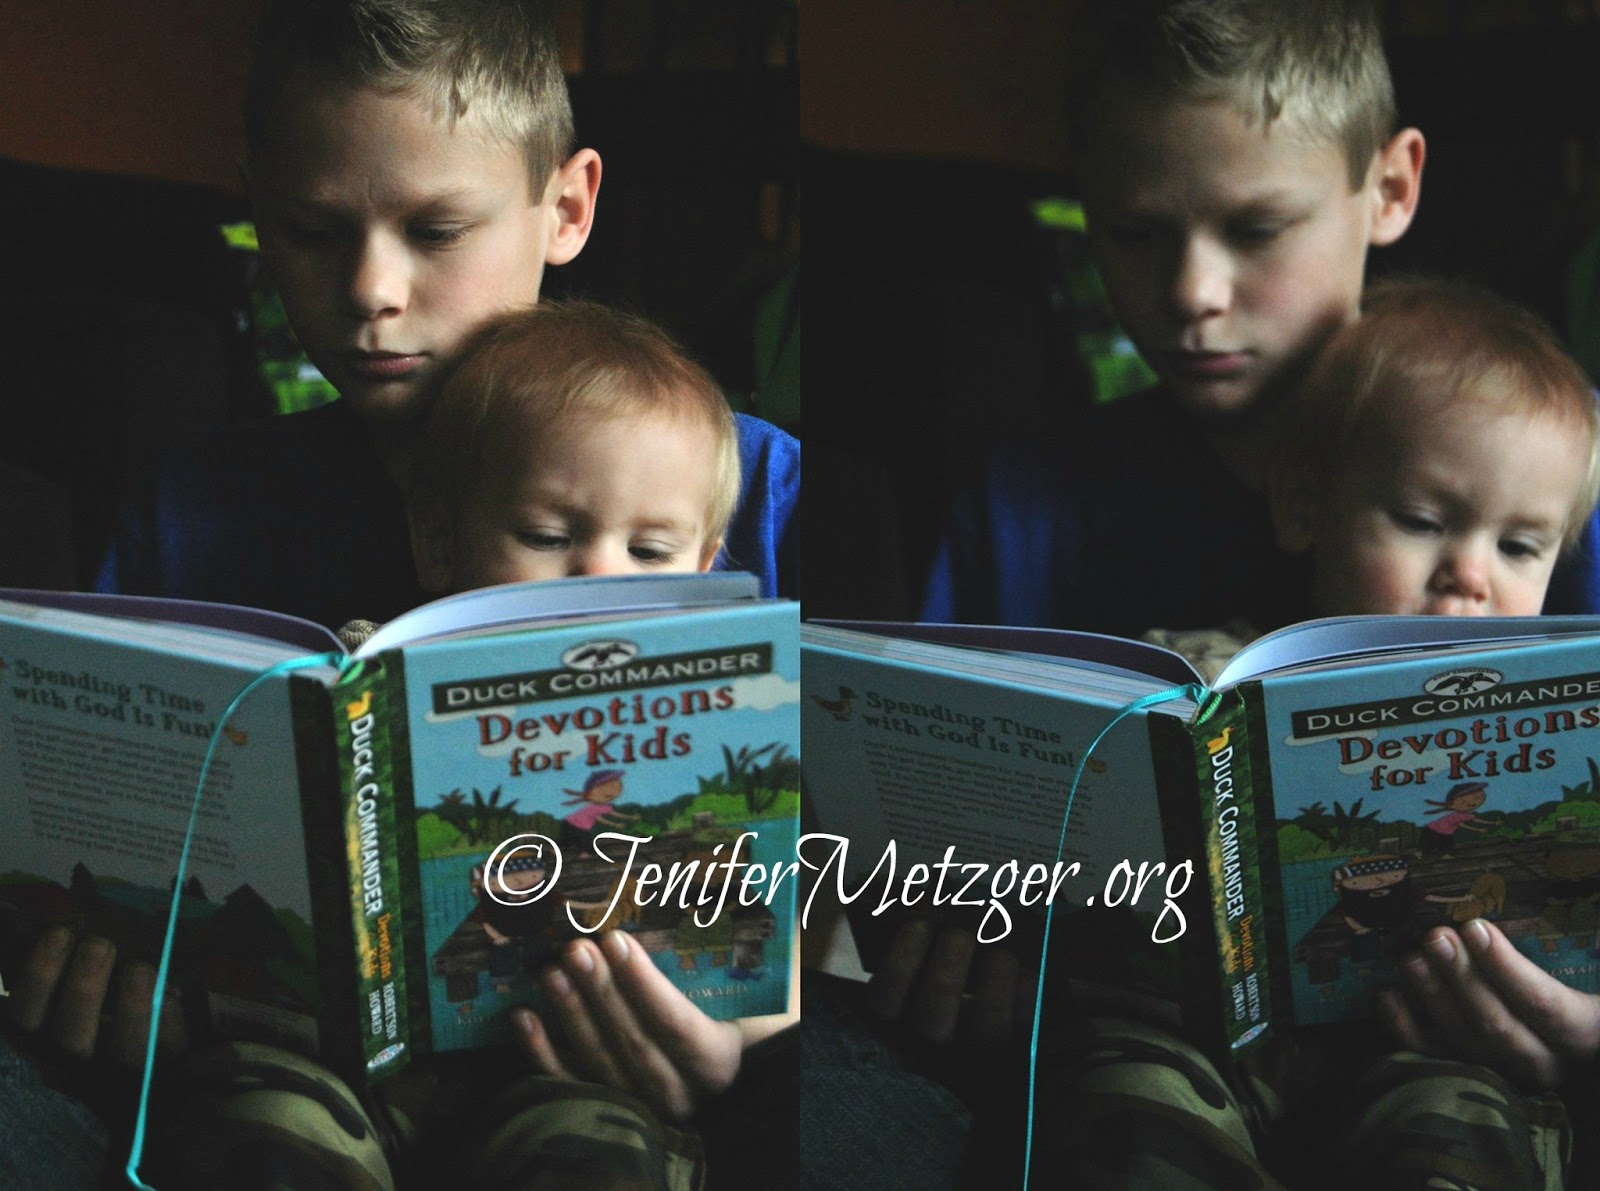 Duck Commander Devotions for Kids. #duckdynasty #duckcommander #kids #devotions #parenting